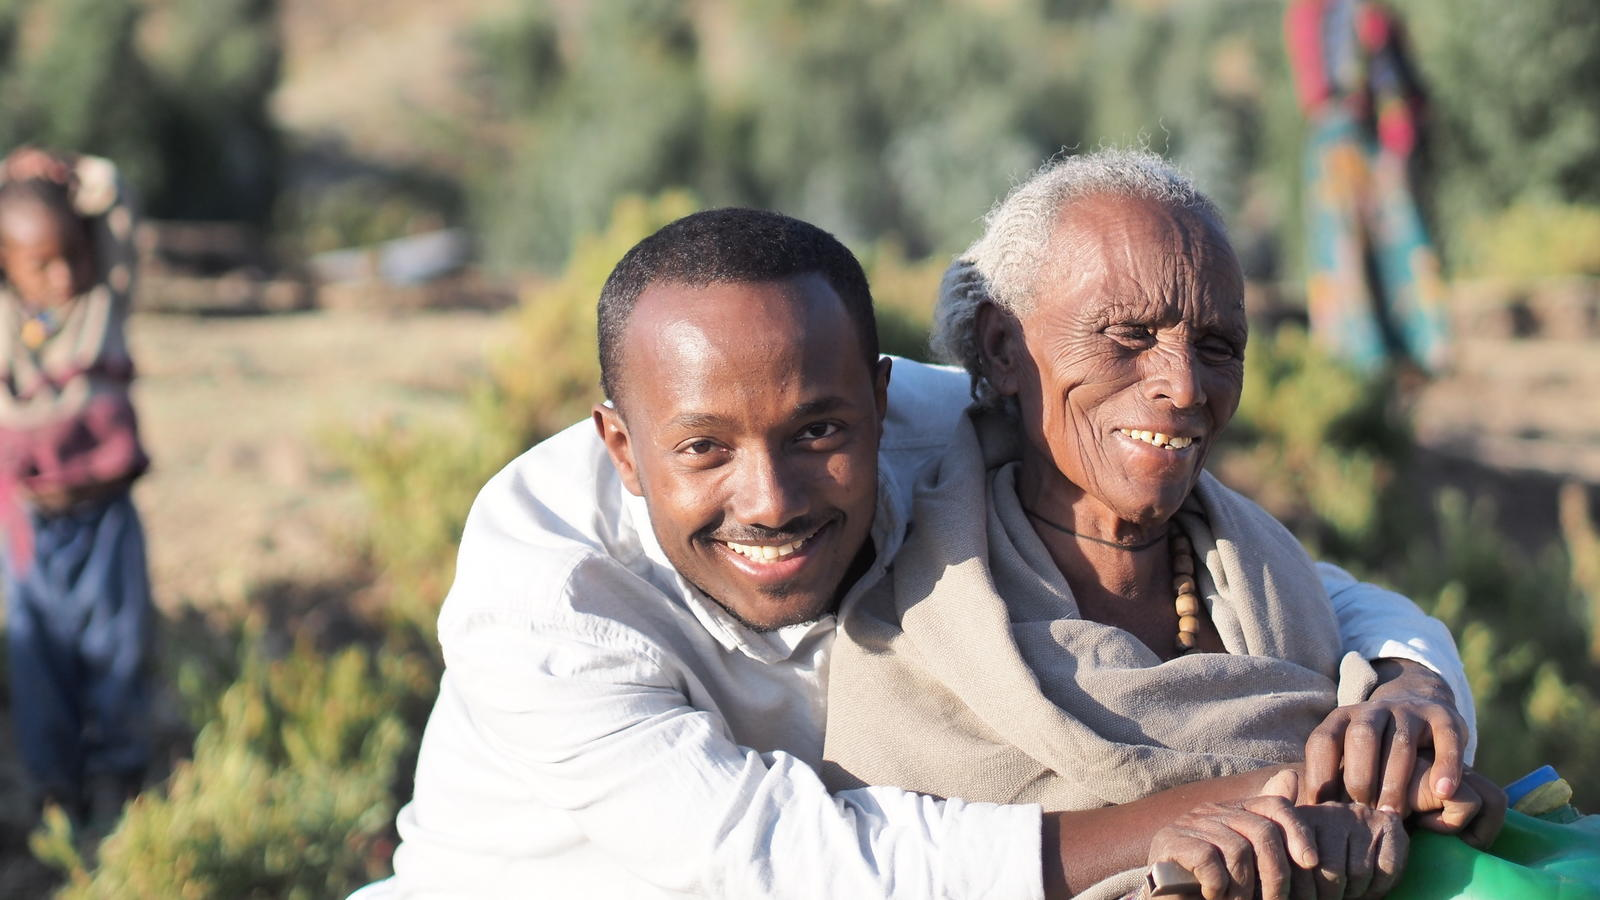 Behailu has his photo taken with 80-year-old Birhane in Tigray, Ethiopia.